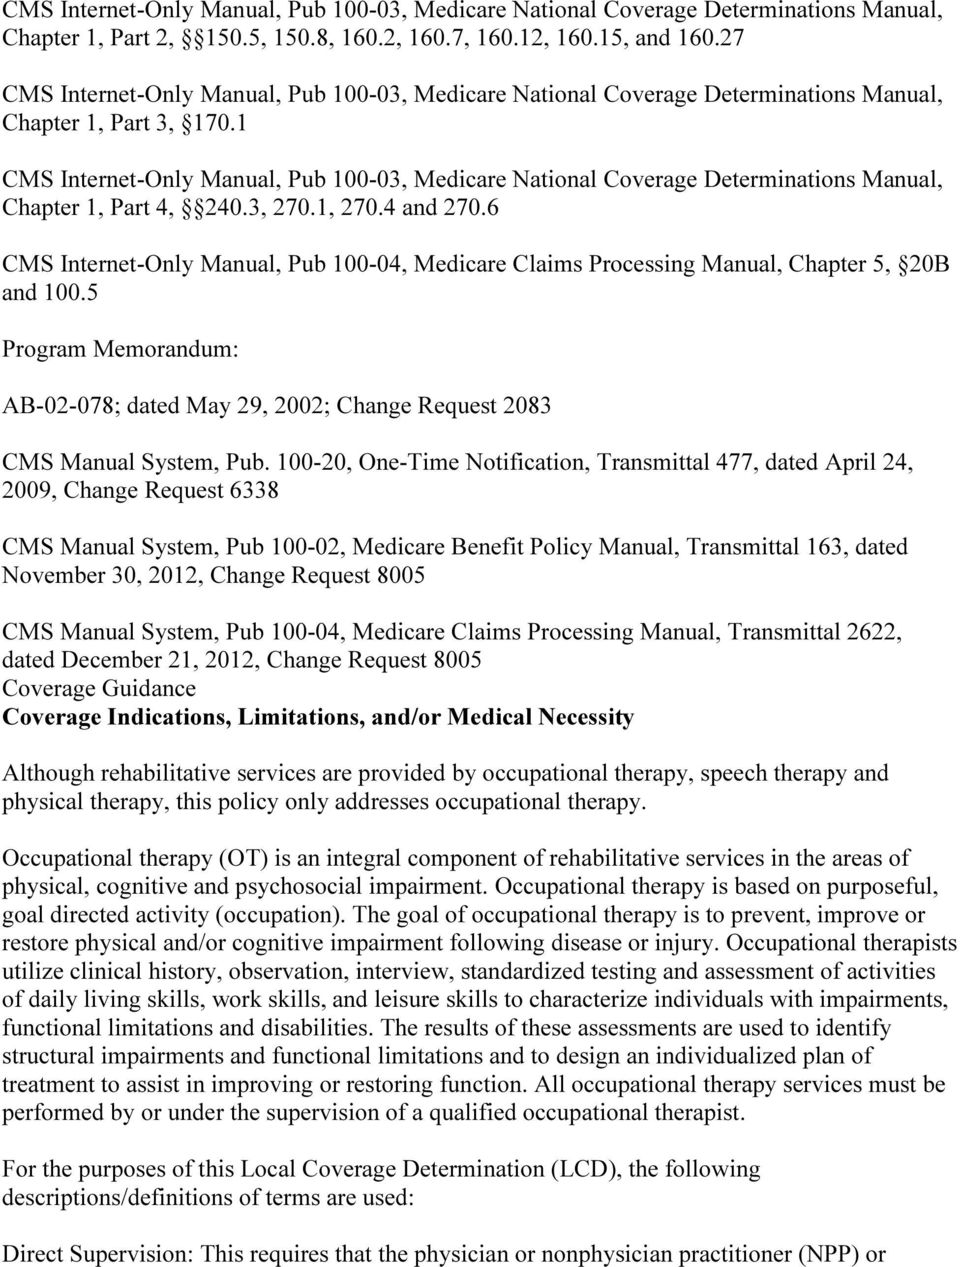 1 CMS Internet-Only Manual, Pub 100-03, Medicare National Coverage  Determinations